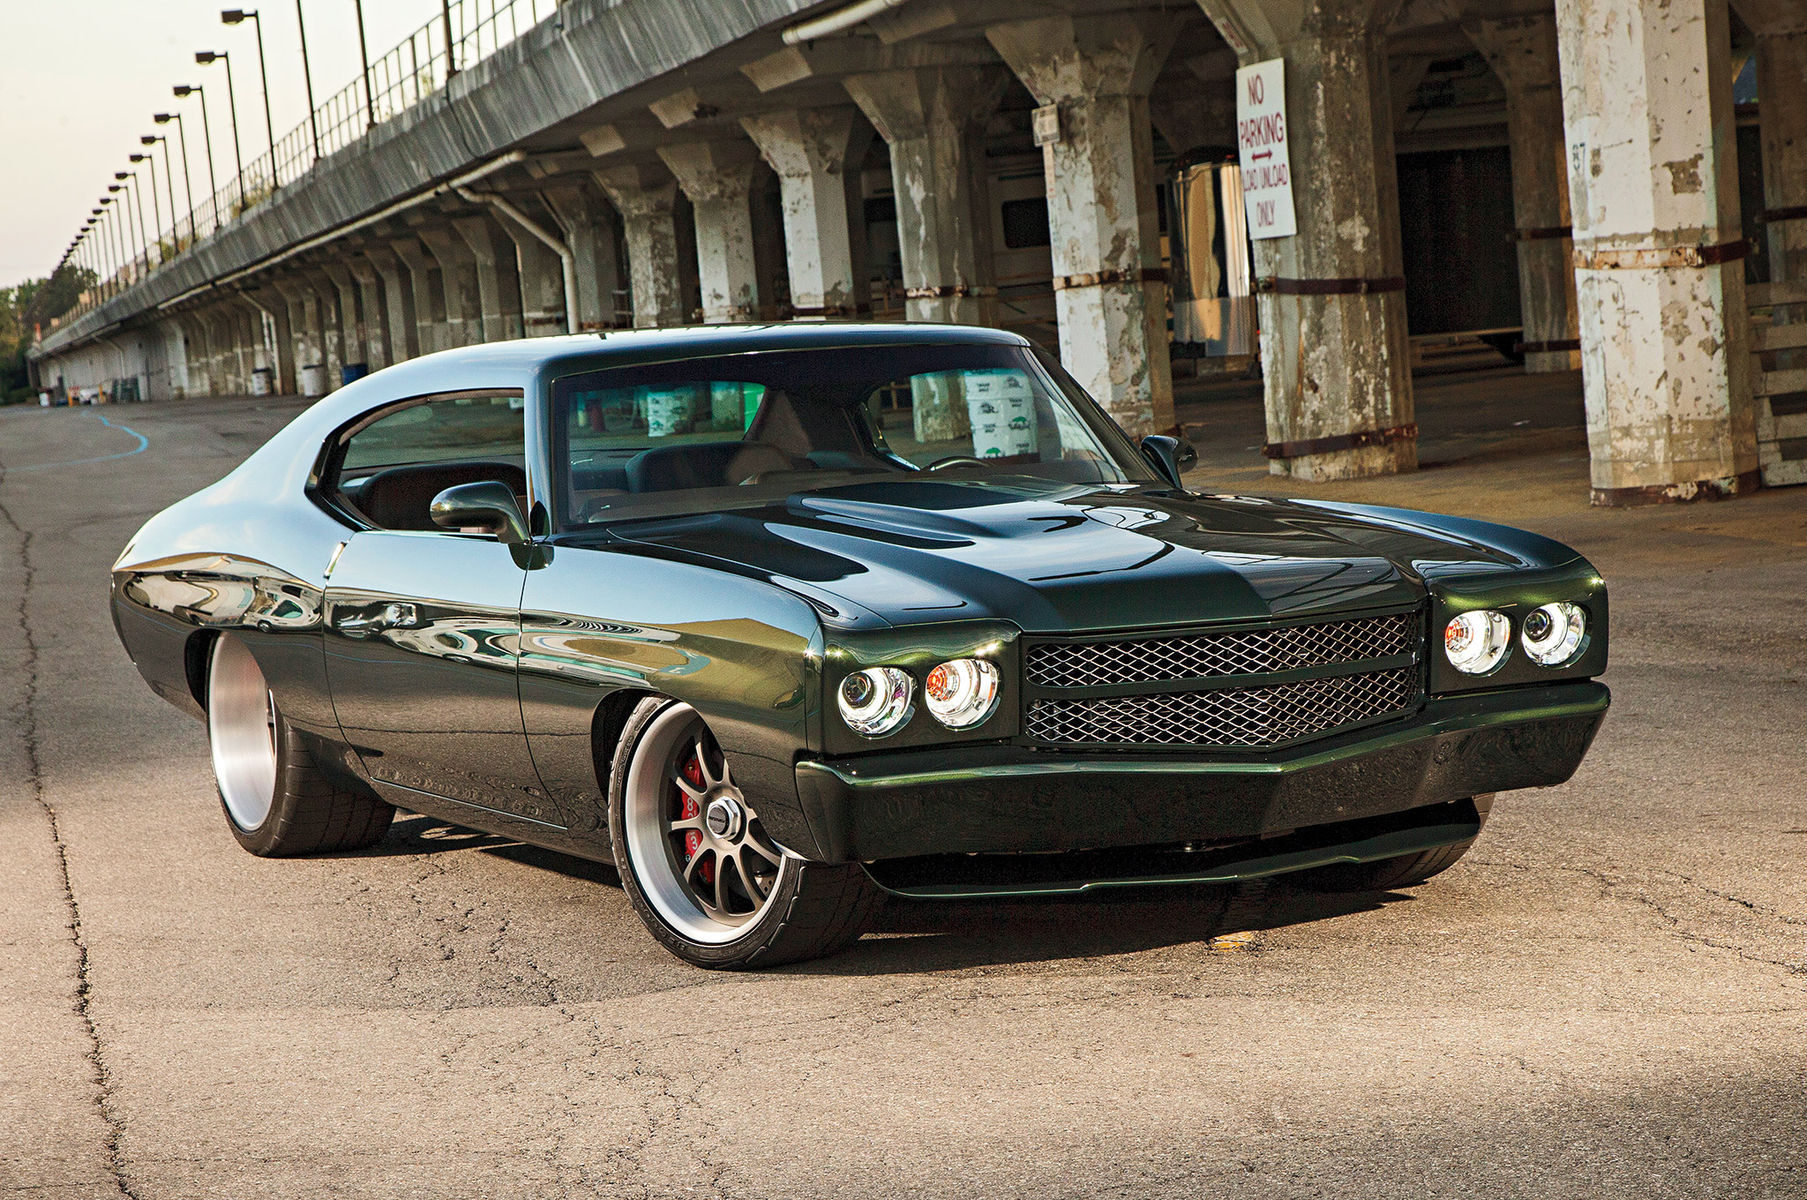 1971 Chevrolet Chevelle |  Chevicious Chevelle on Forgeline ZX3P Wheels